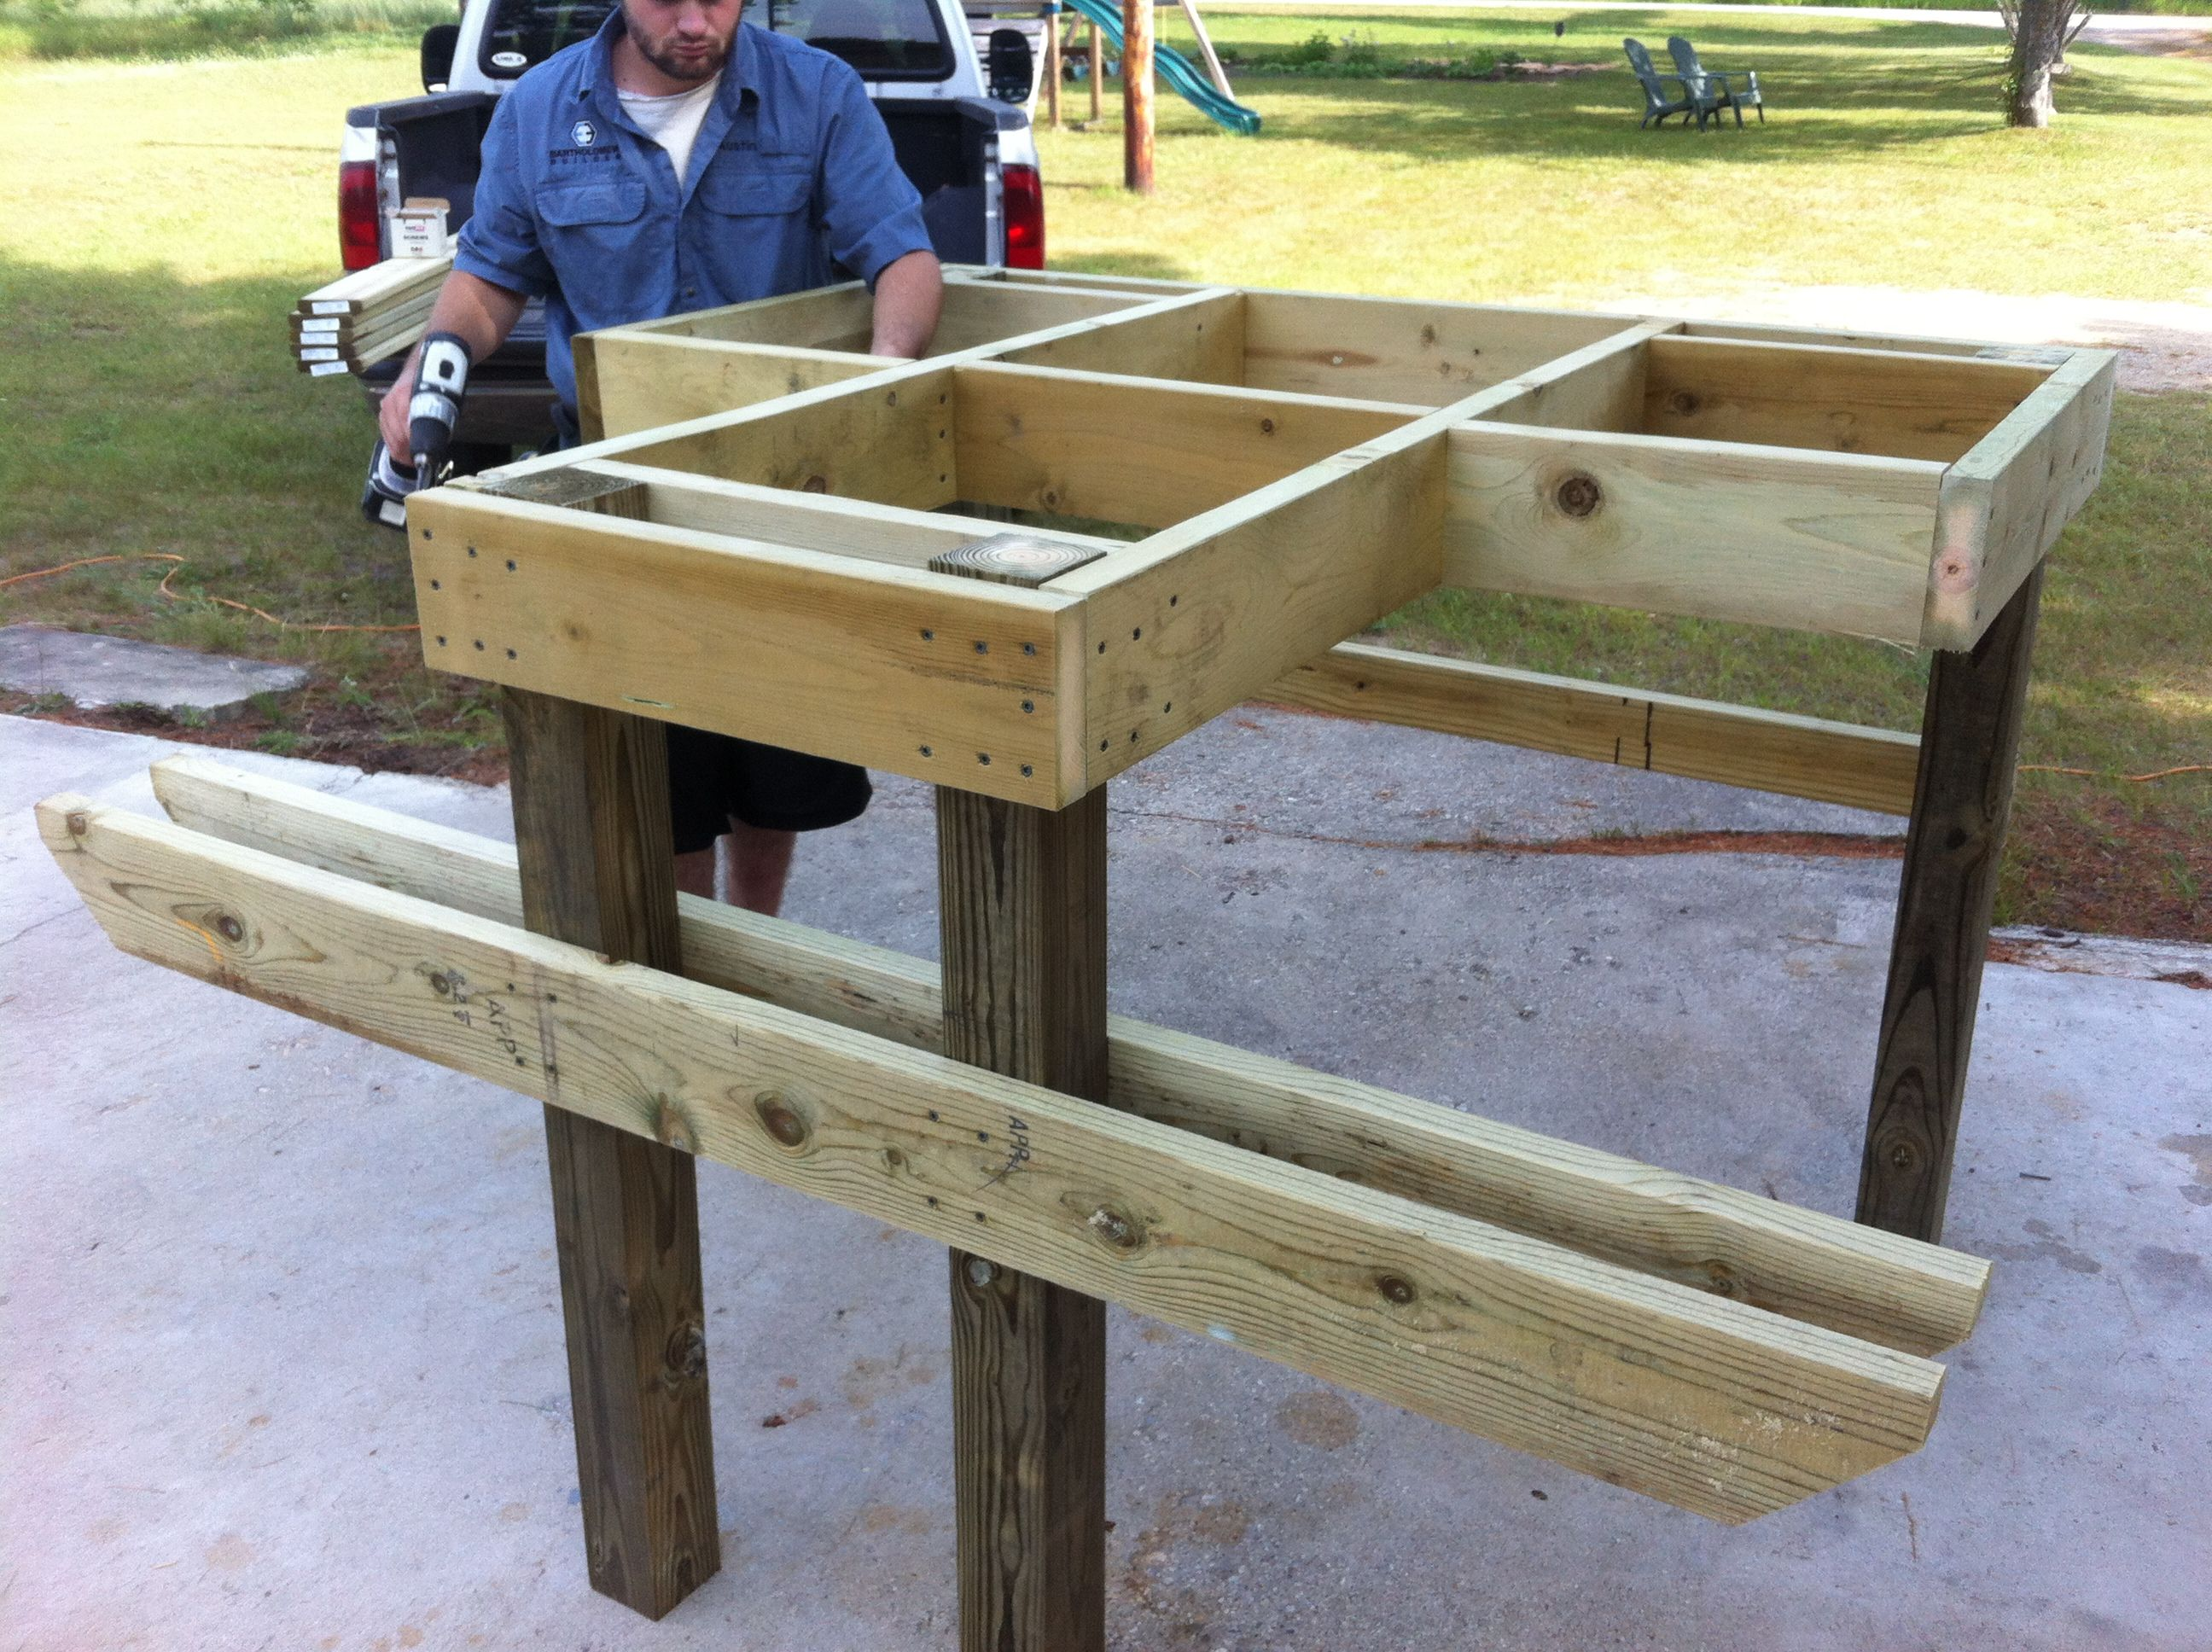 Diy Shooting Bench 28 Images Built My Own Shooting Bench Pictures Diy Shooting Bench Plans